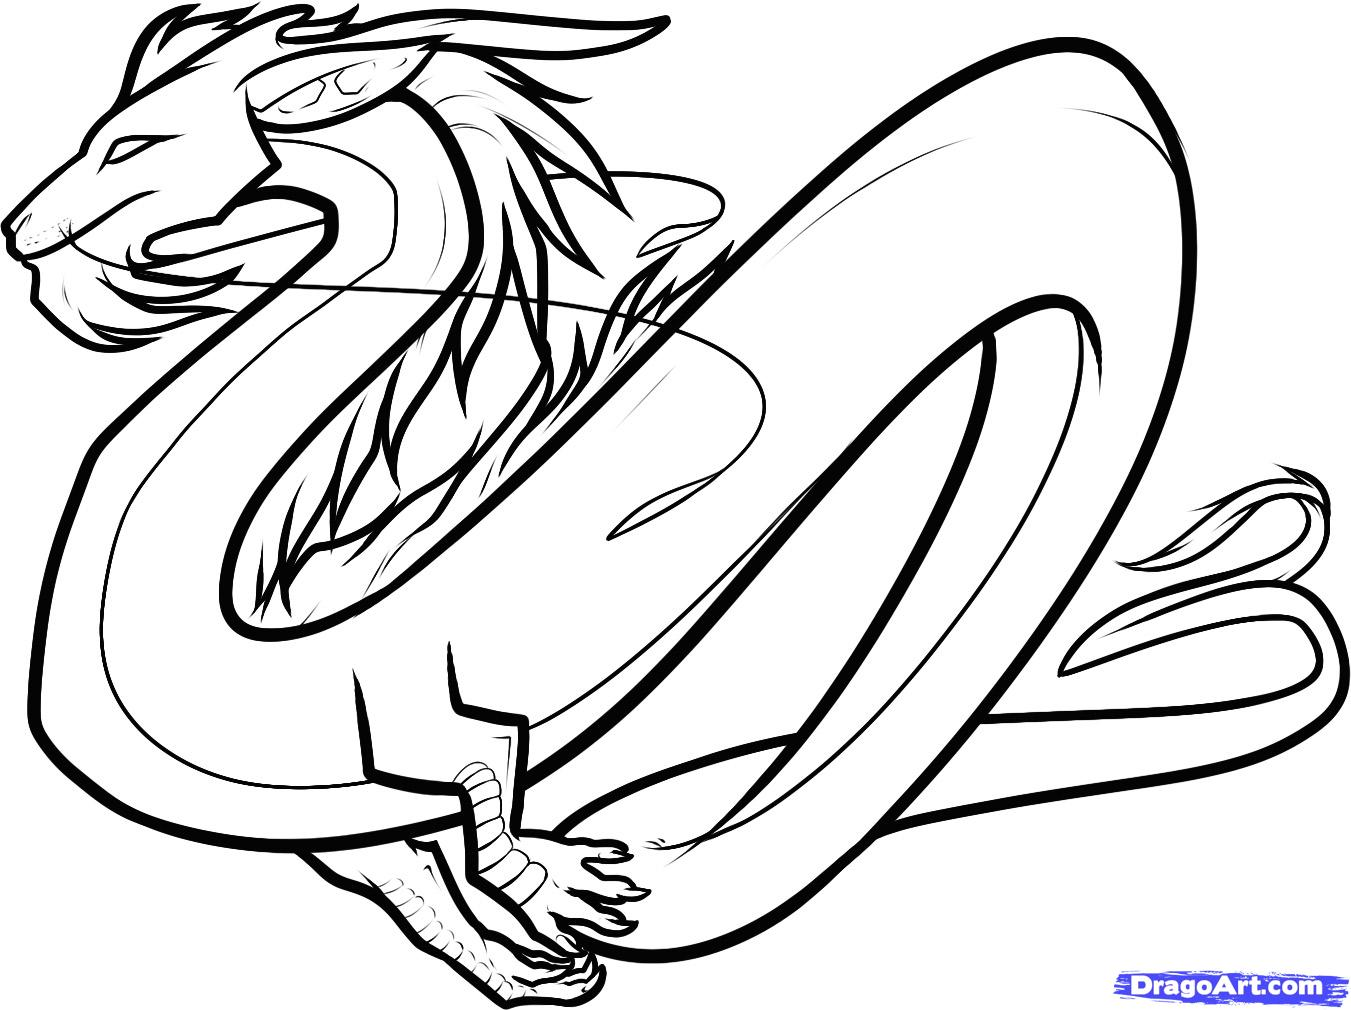 1351x1010 How To Draw A Cool Dragon Easy Step